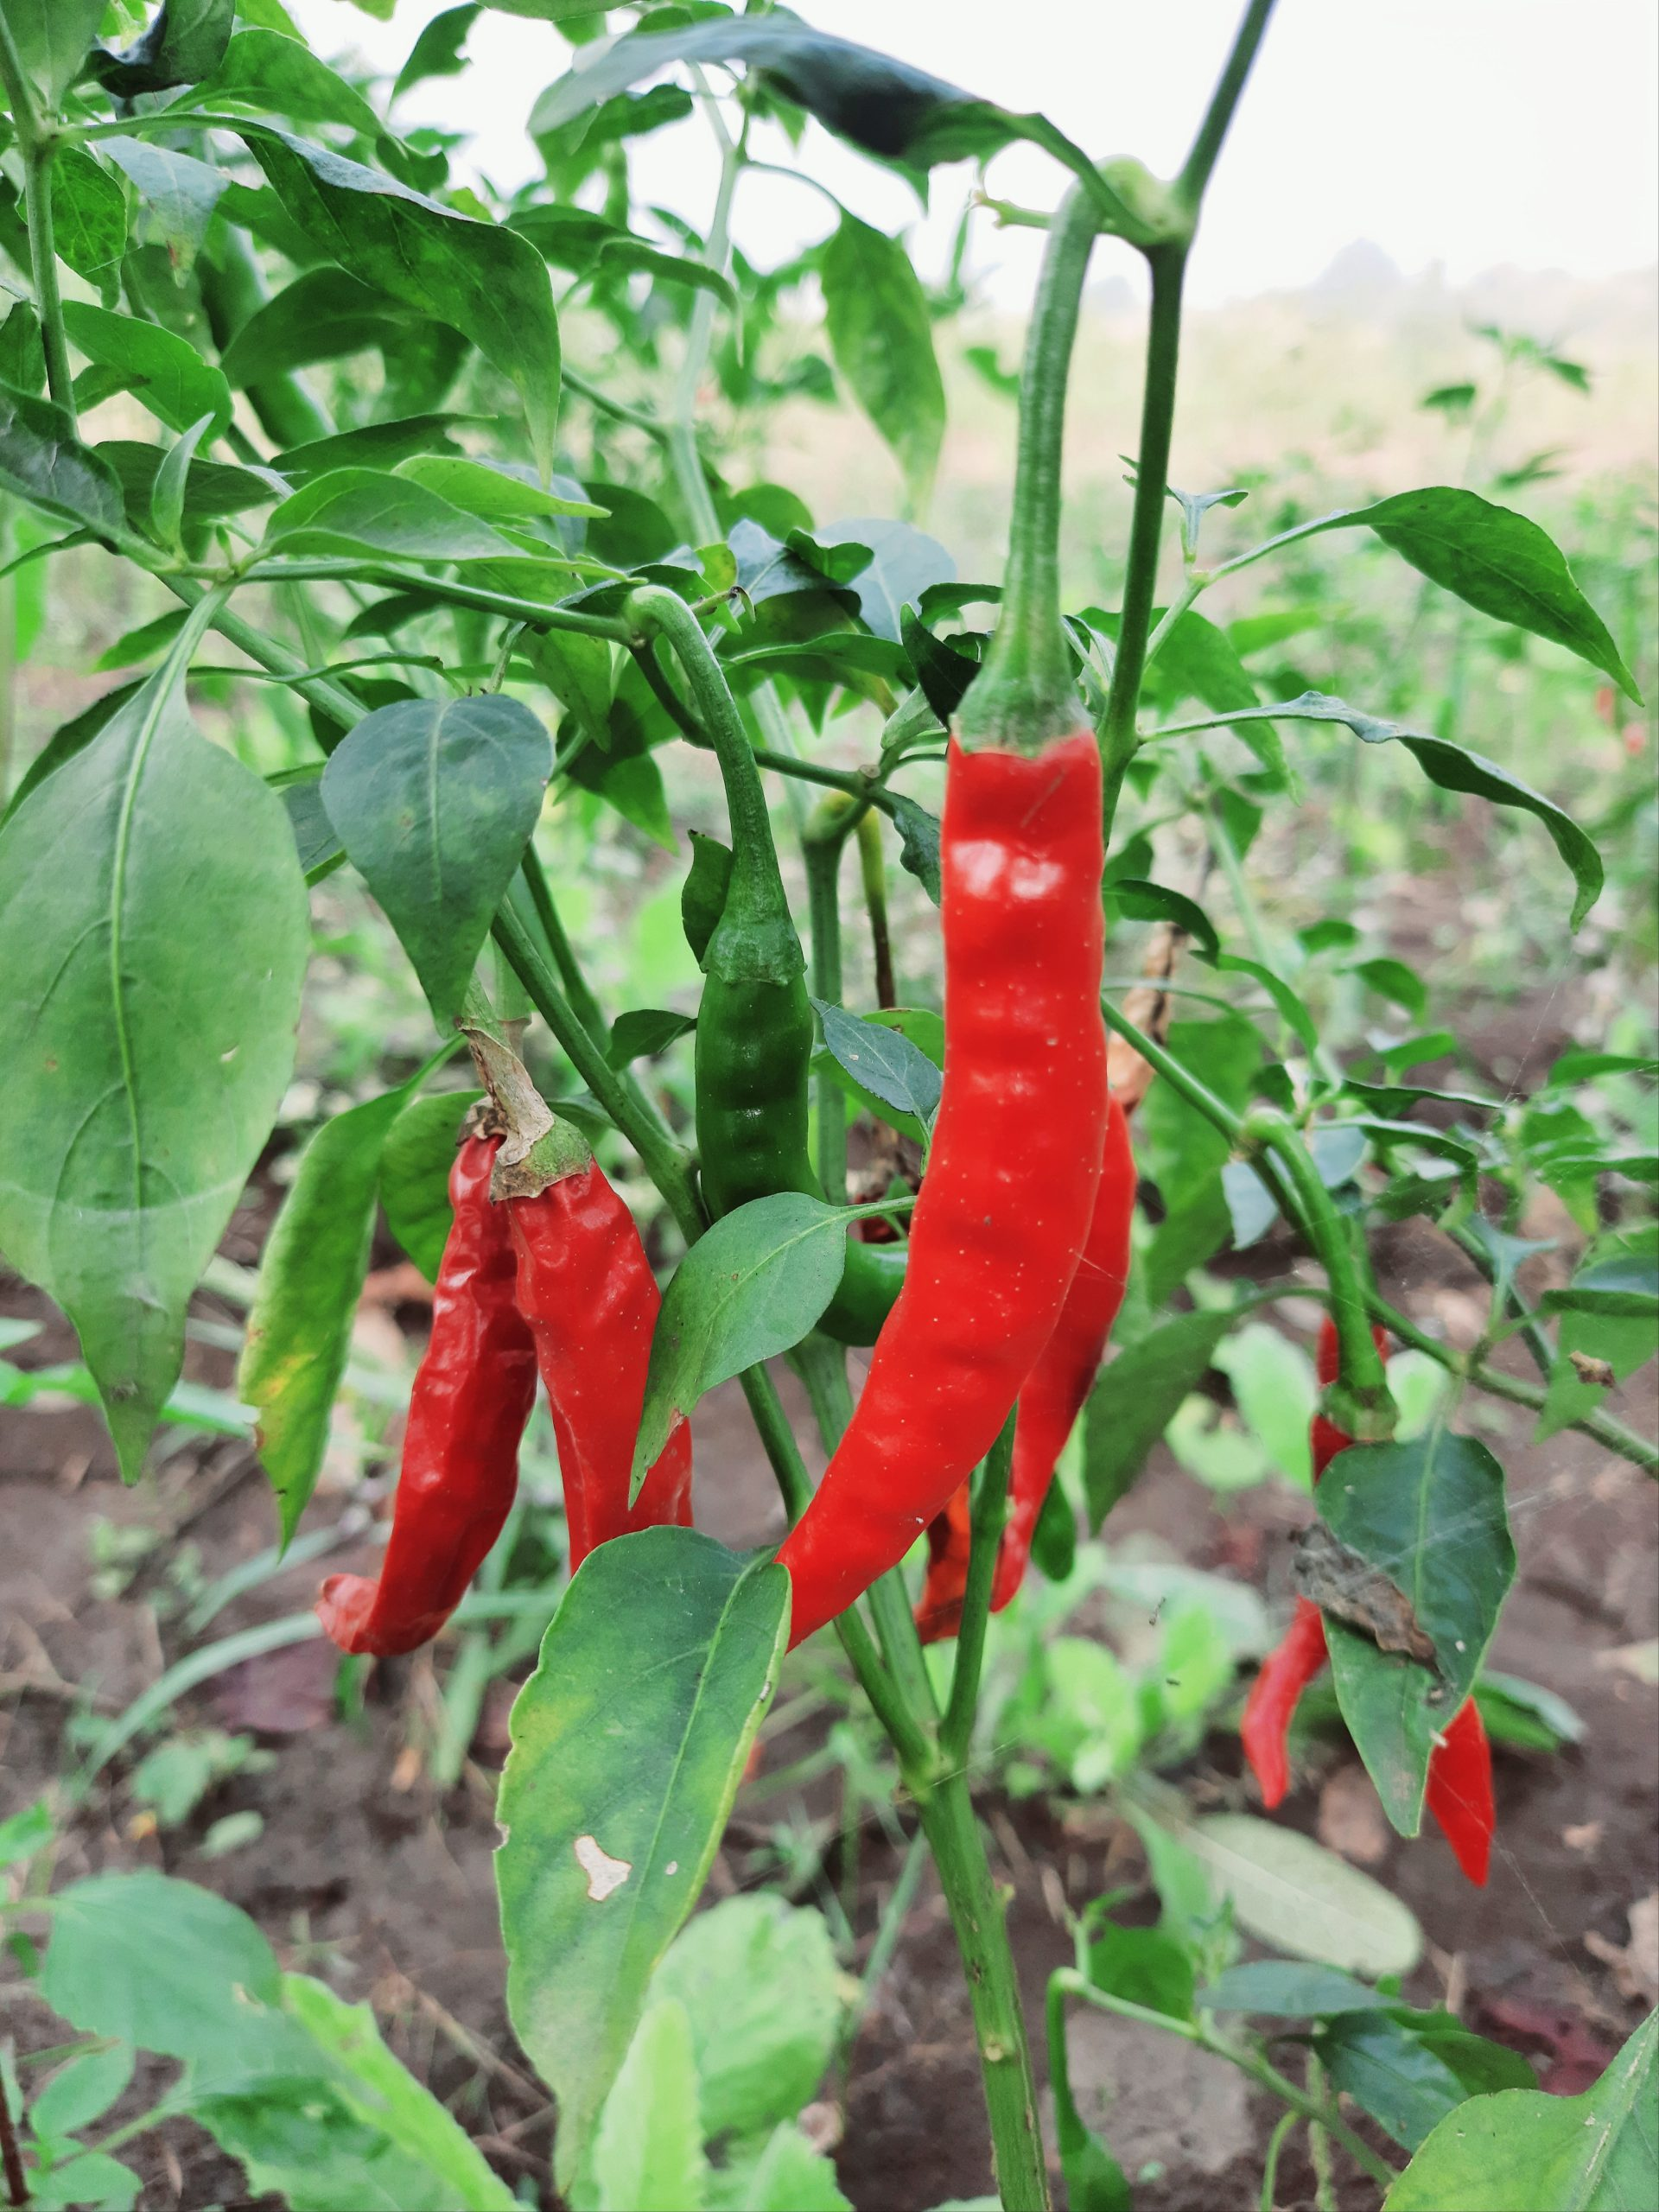 chillies on a plant